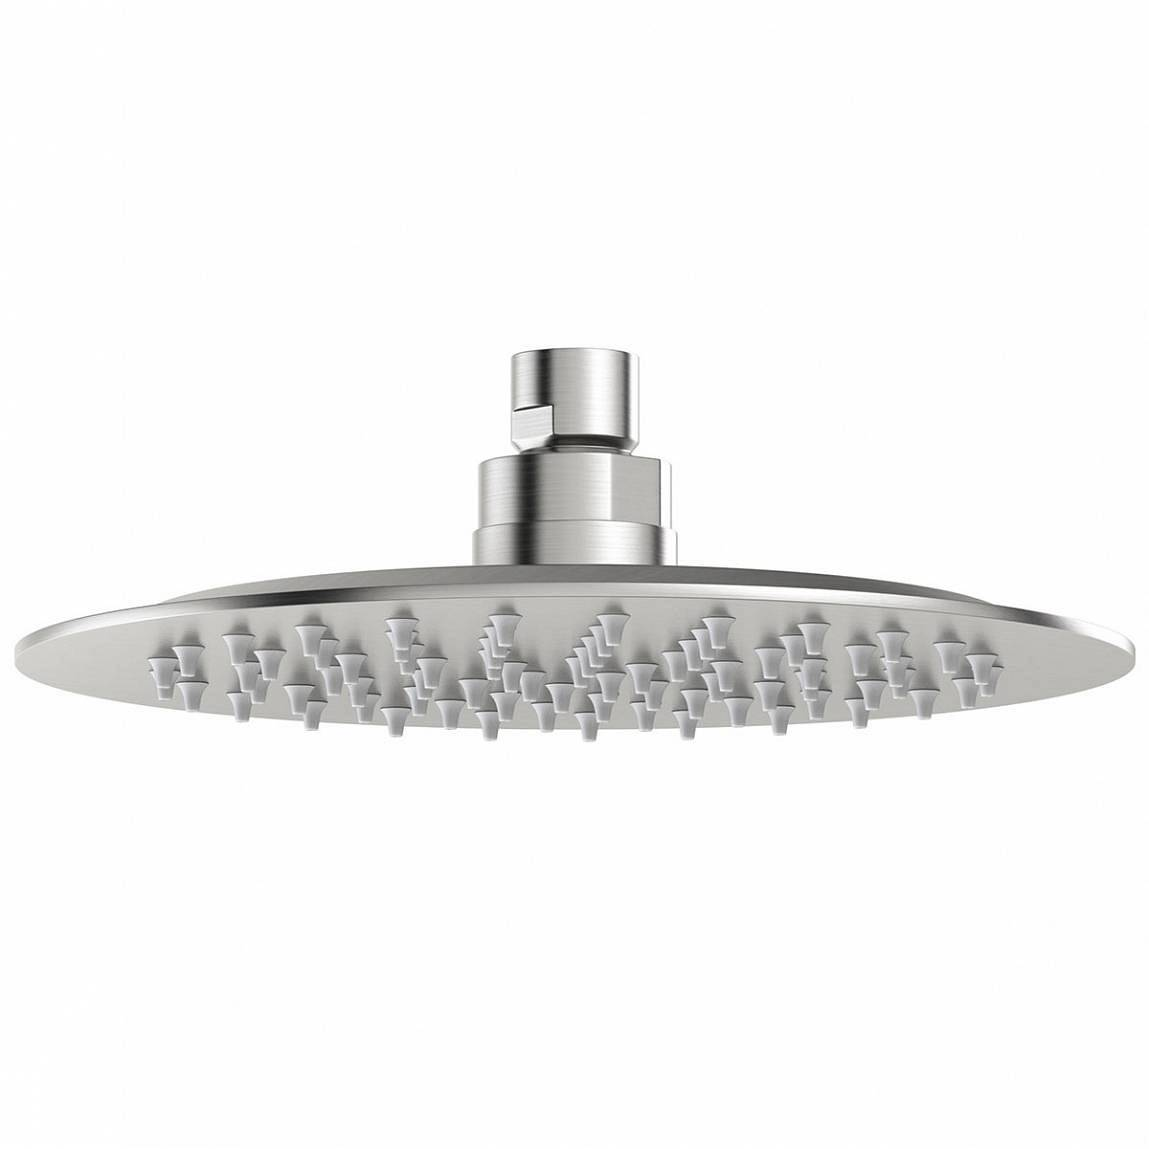 Image of Round Waifer 200mm Head and Ceiling Arm